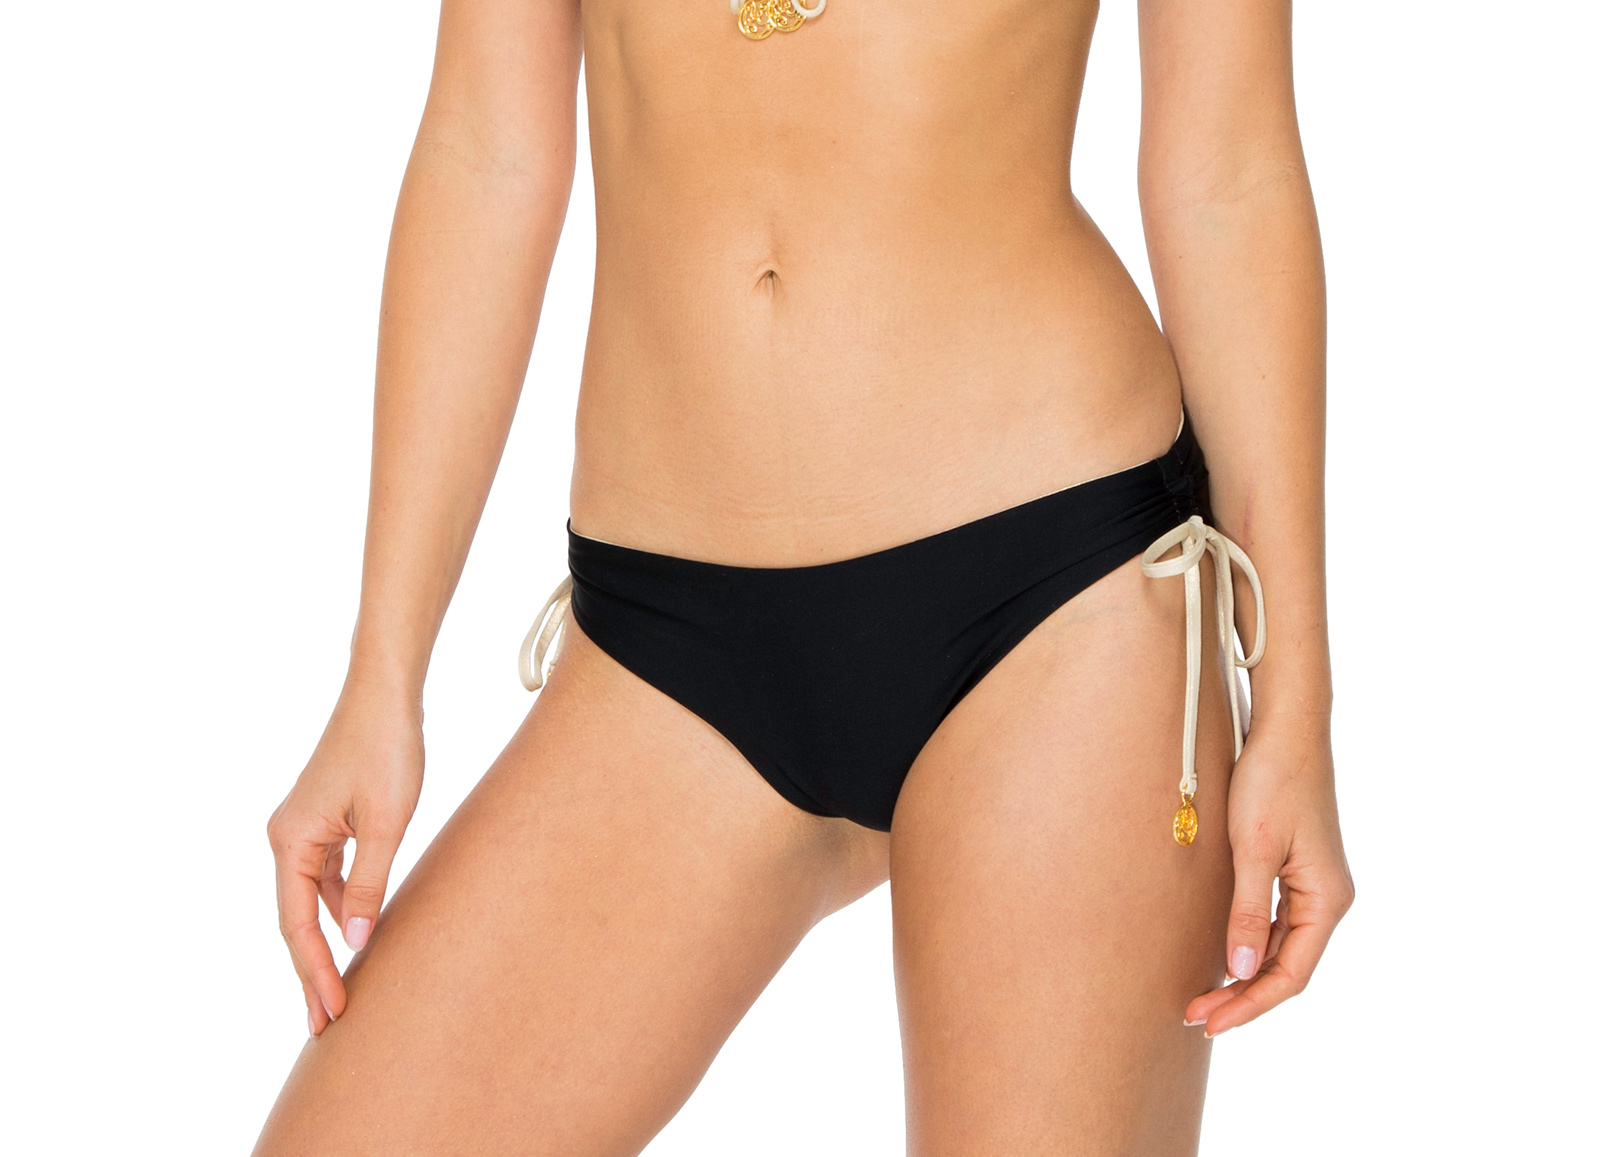 c6849223d999d Reversible Bikini Bottom Black   Gold - Bottom Black Drawstring